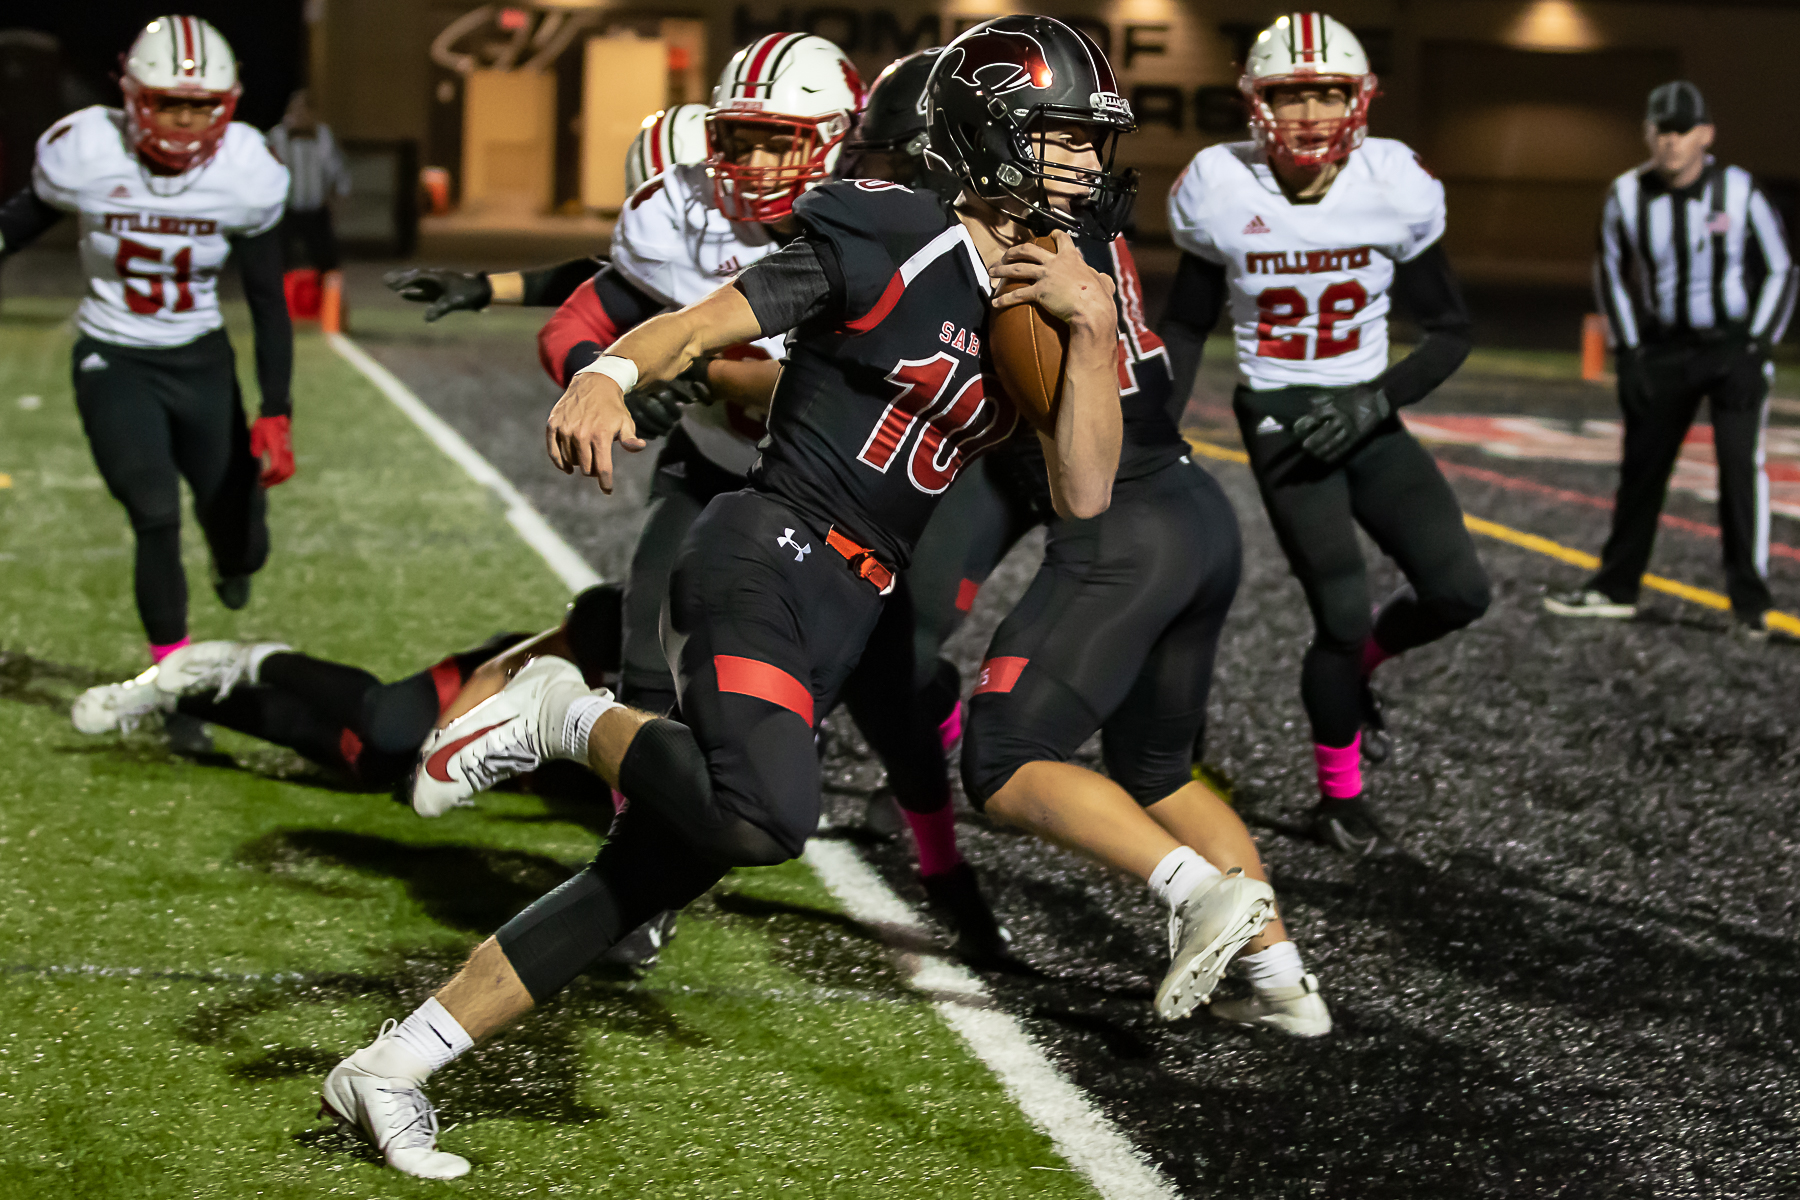 Shakopee quarterback David Bigaouette gave his team an early 13-0 lead over Stillwater. Bigaouette finished with four touchdowns, leading the Sabers to a 34-7 homecoming victory on Friday night at Vaughan Field. Photo by Gary Mukai, SportsEngine